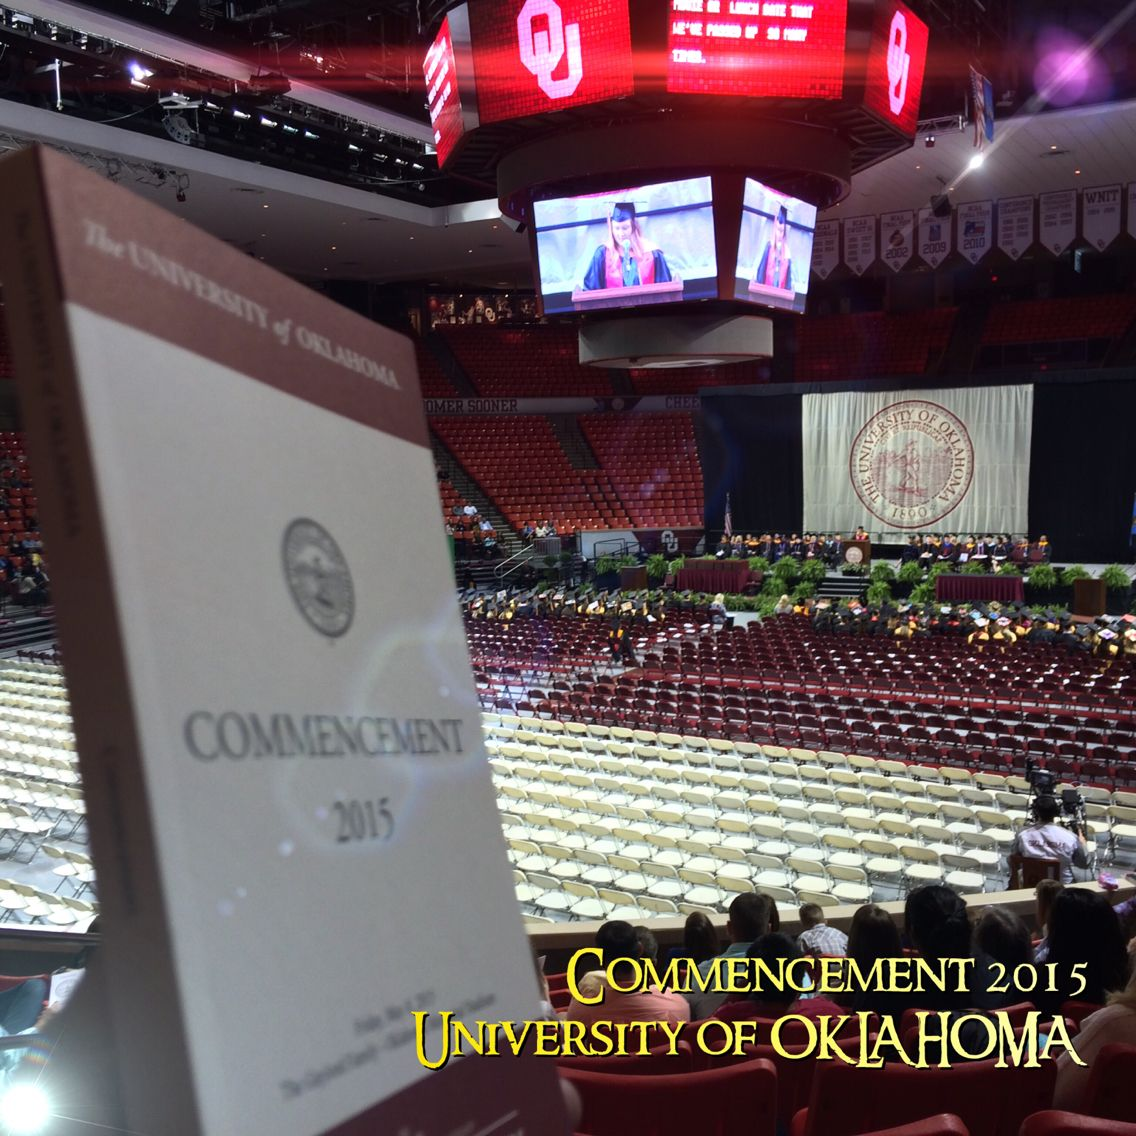 Sister Commencement 2015 University of Oklahoma ou